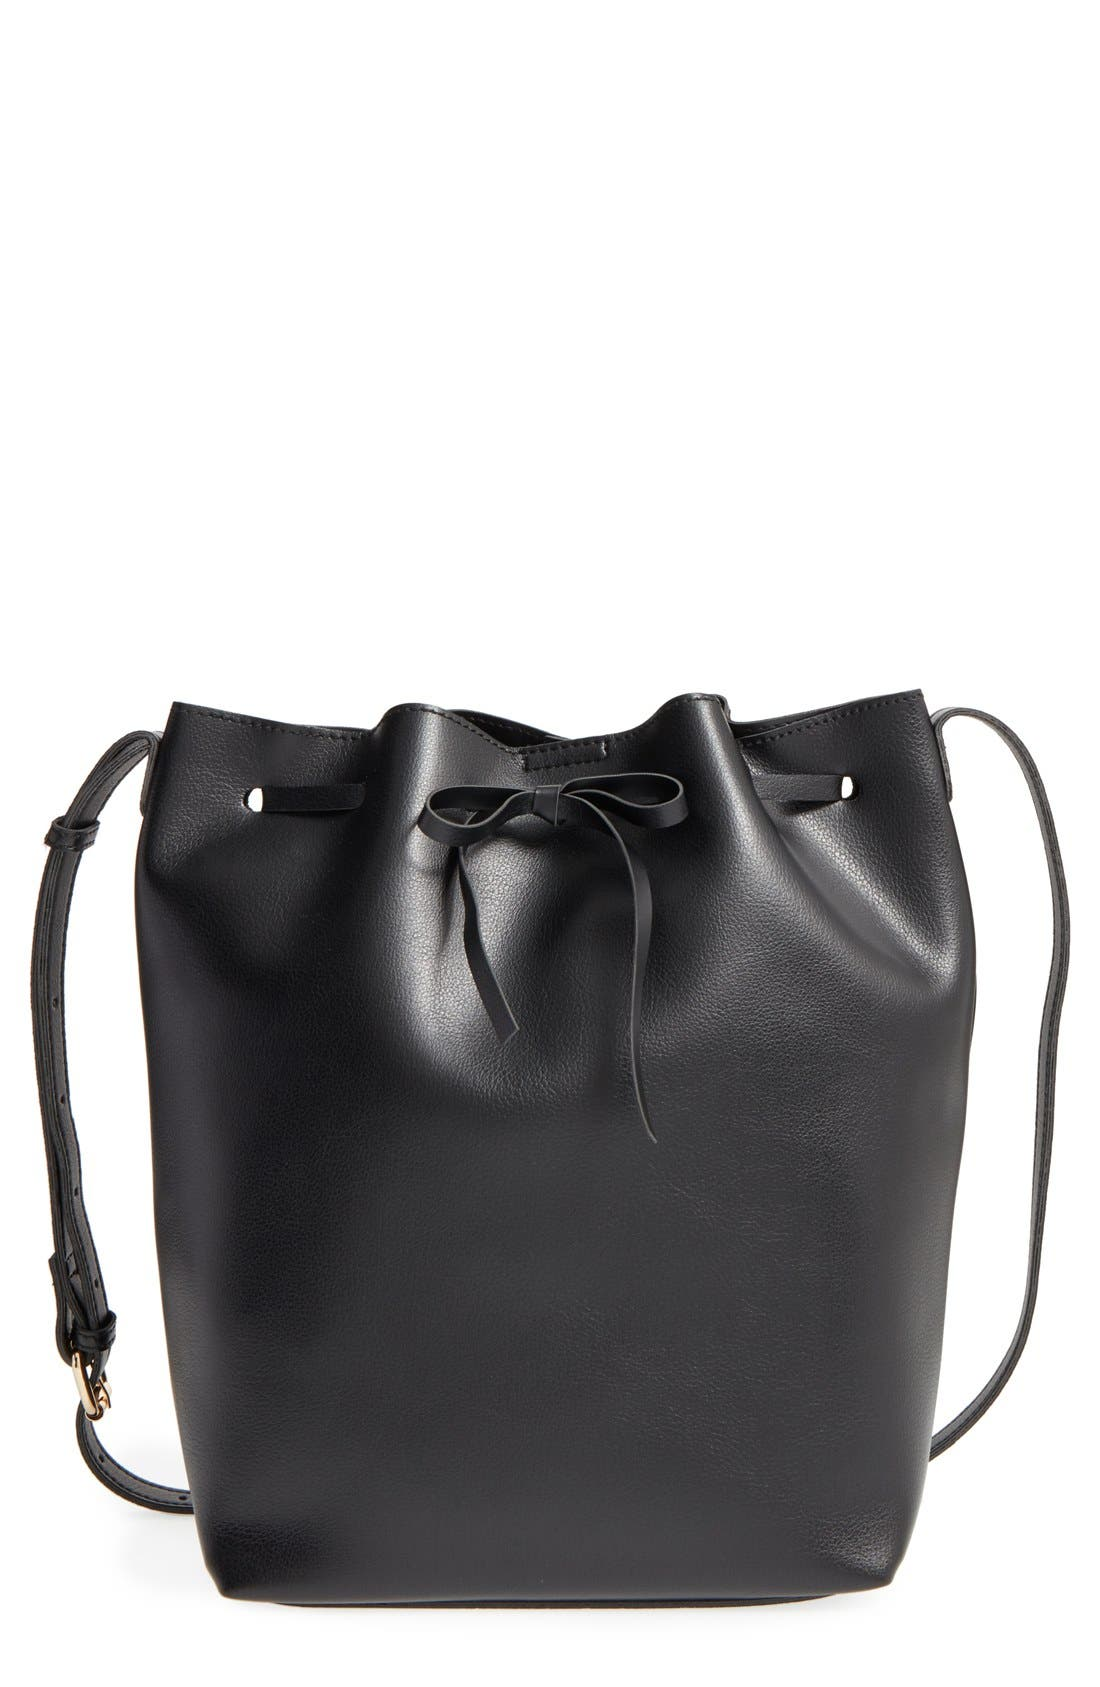 SOLE SOCIETY 'Blackwood' Faux Leather Bucket Bag, Main, color, 001